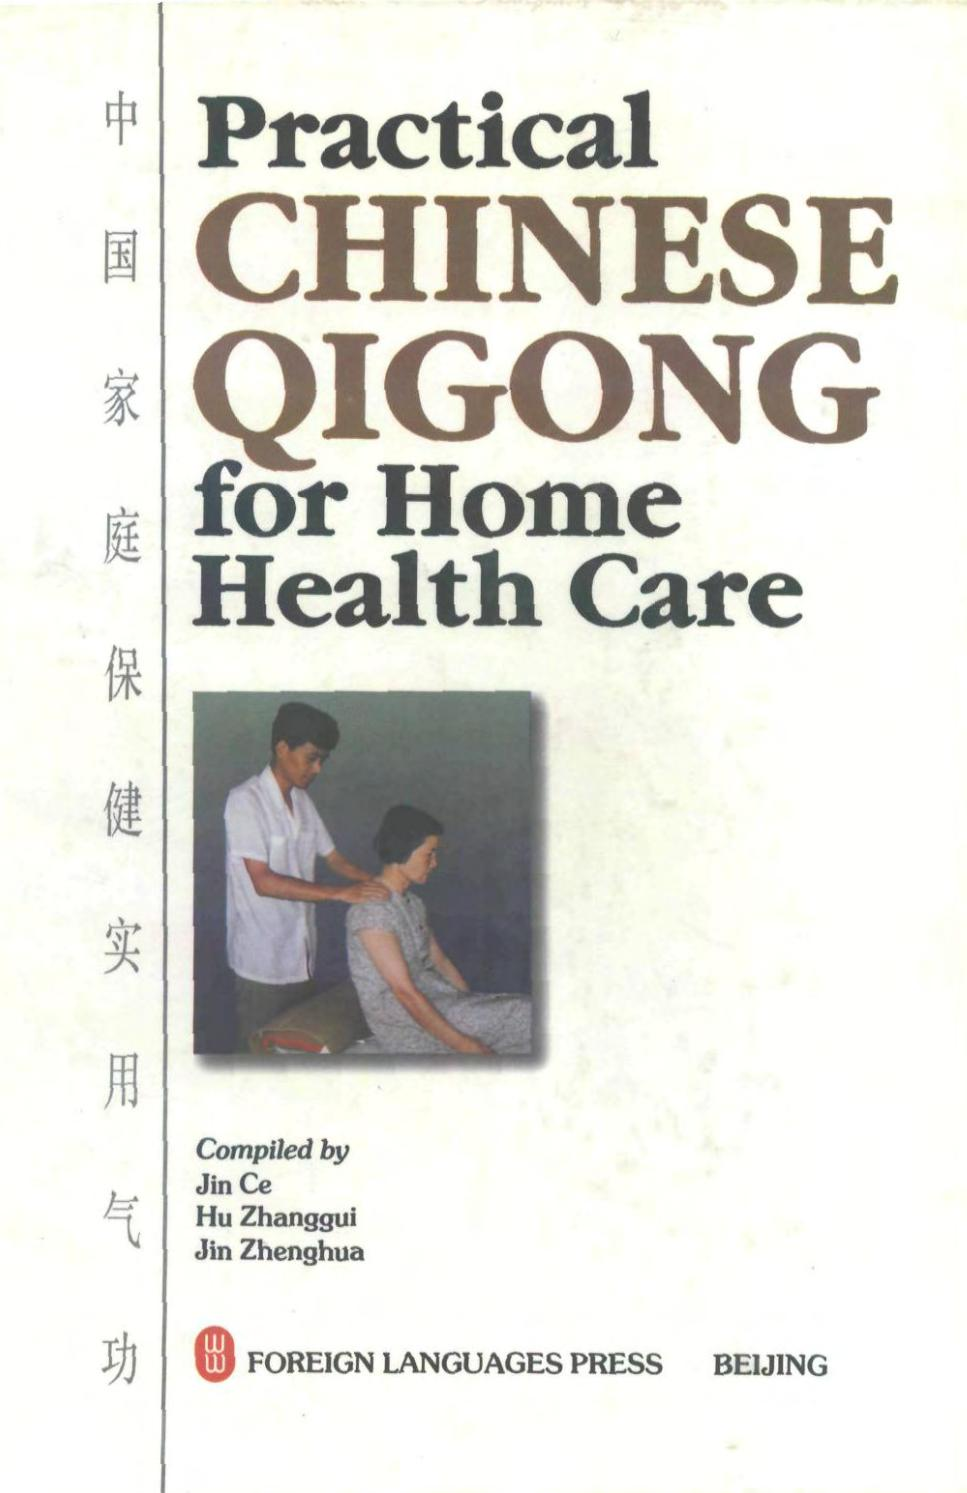 Qi gong chinese qigong for home healing by essence of health - issuu